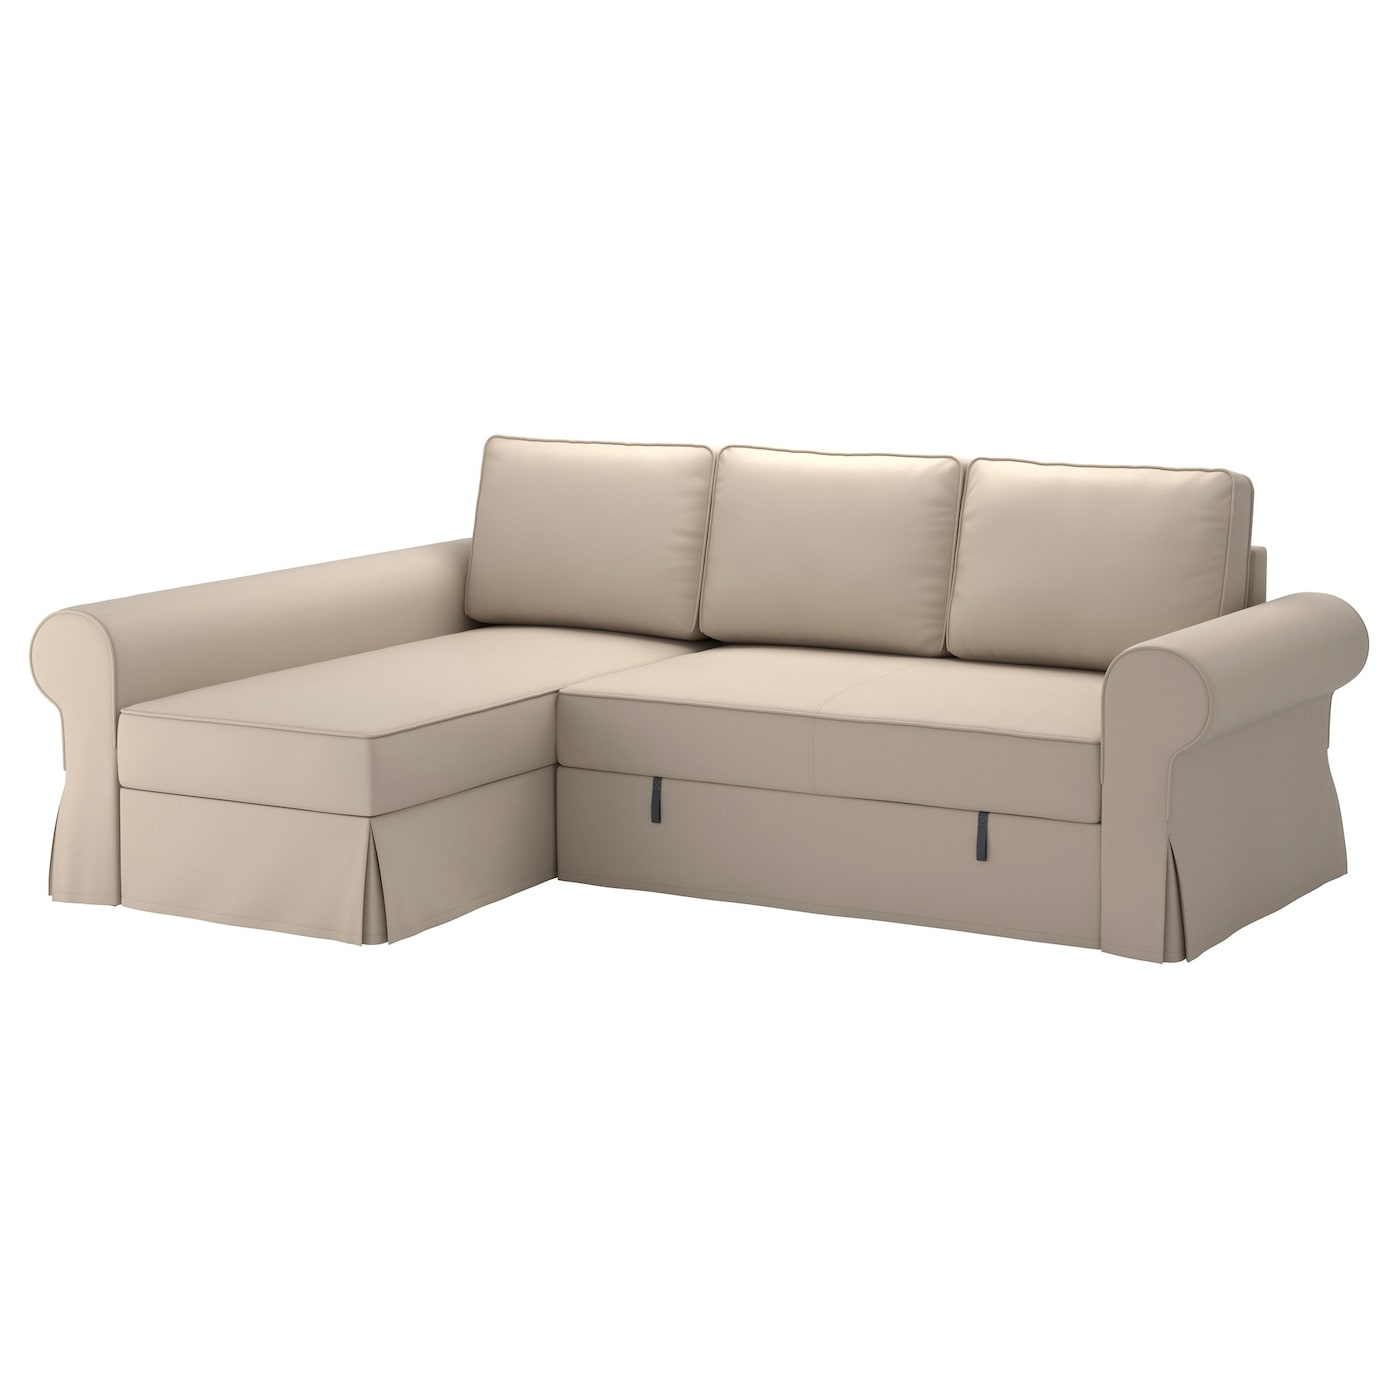 Backabro sofa bed with chaise longue ramna beige ikea for Chaise longue sofa